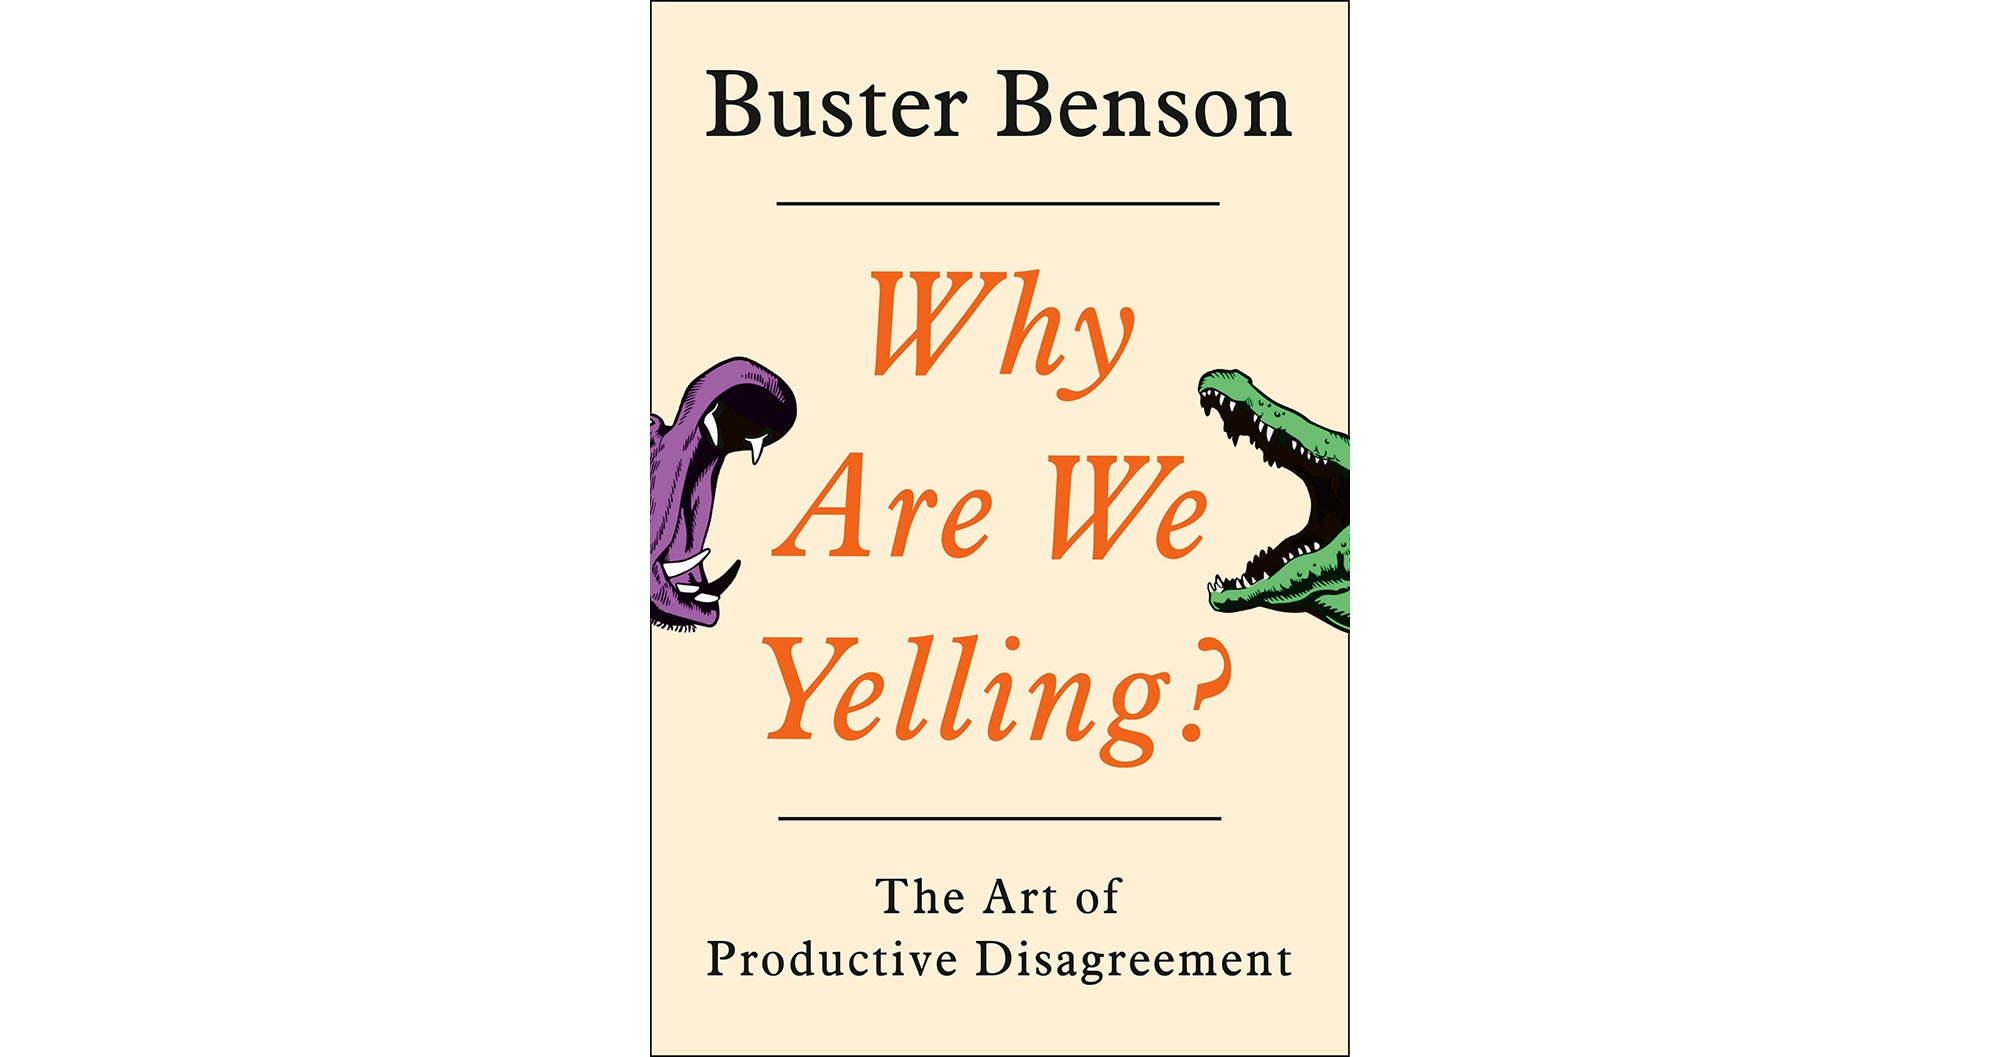 Why Are We Yelling?, by Buster Benson